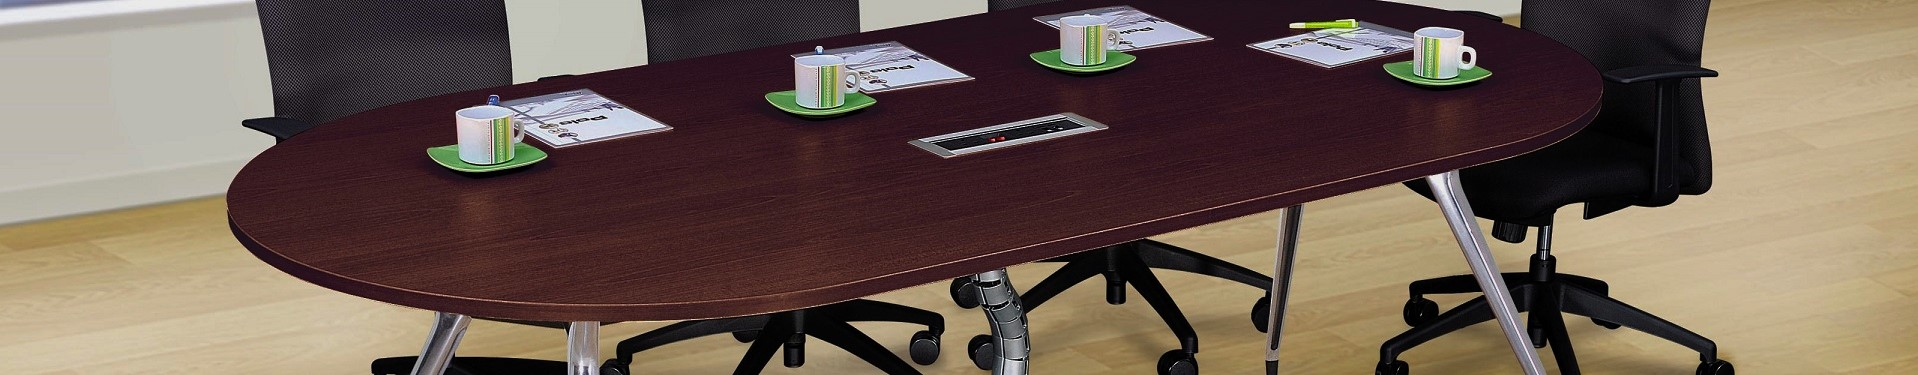 Luxury  Office Tables And Chairs  Best Computer Chairs For Office And Home